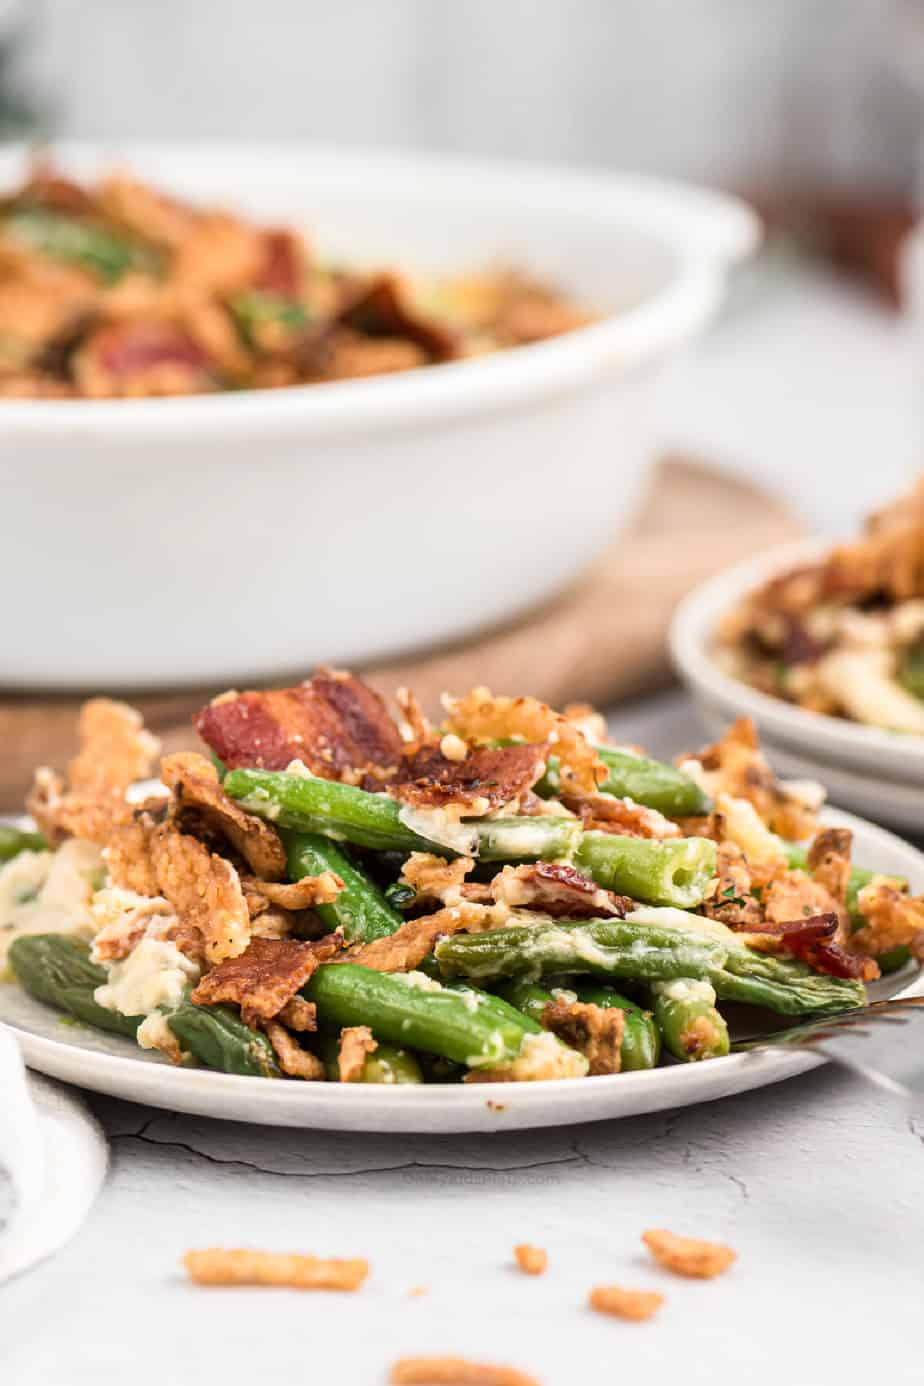 green bean casserole on a plate with bacon pieces, crispy onions and a baking dish in the background